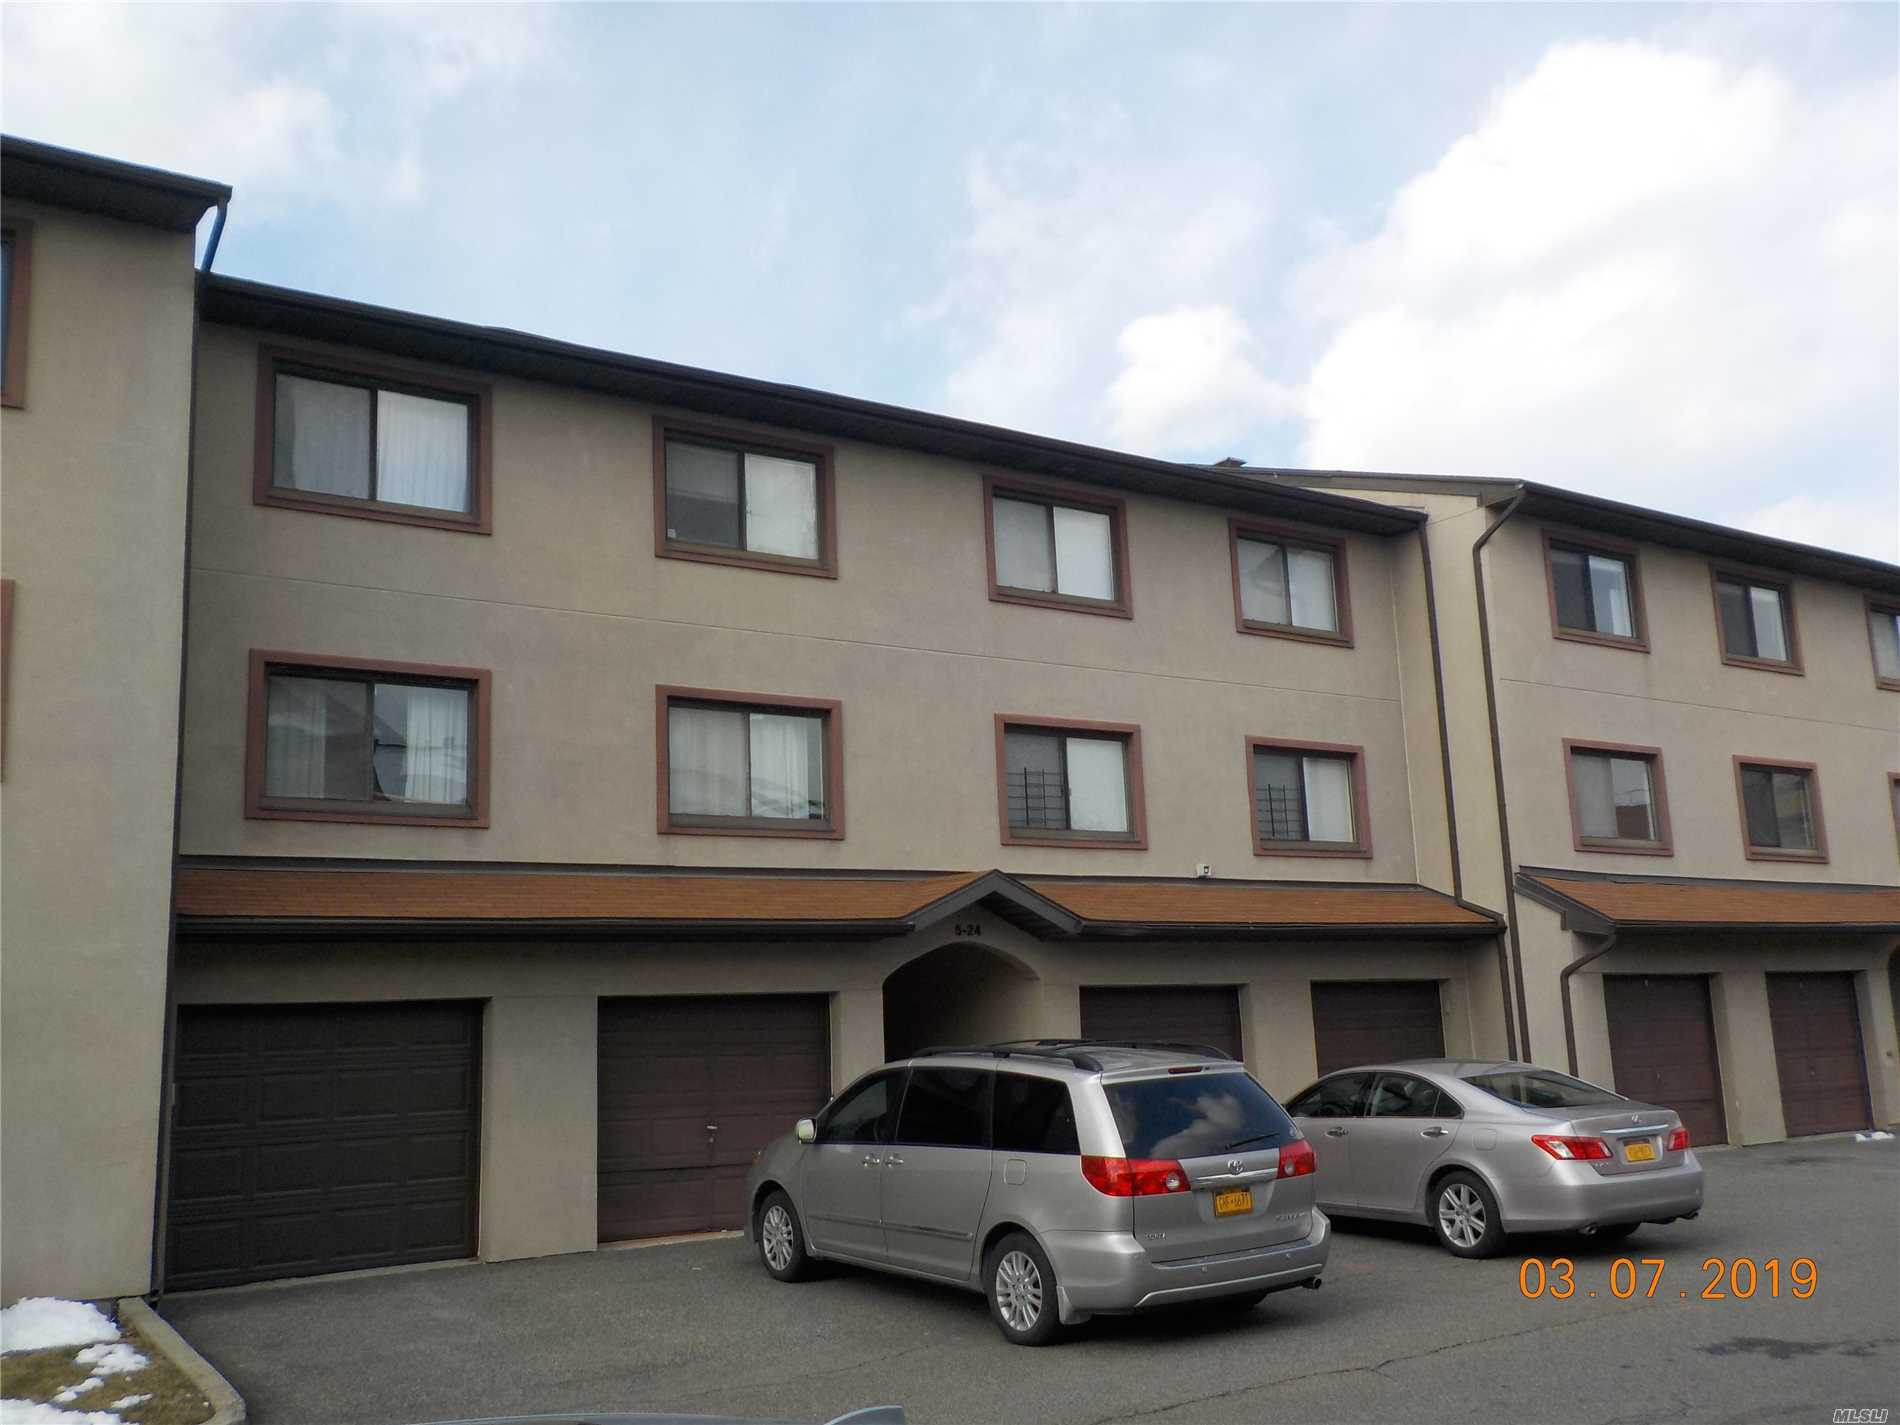 2 bedroom, 2 bath condo located in Bay Park Estates with a water view. Property is being sold in As-Is condition. No representations or warranties. Buyer is responsible for any liens or violations. Buyer to pay NYC / NYS transfer taxes. Cash or rehab loan only.